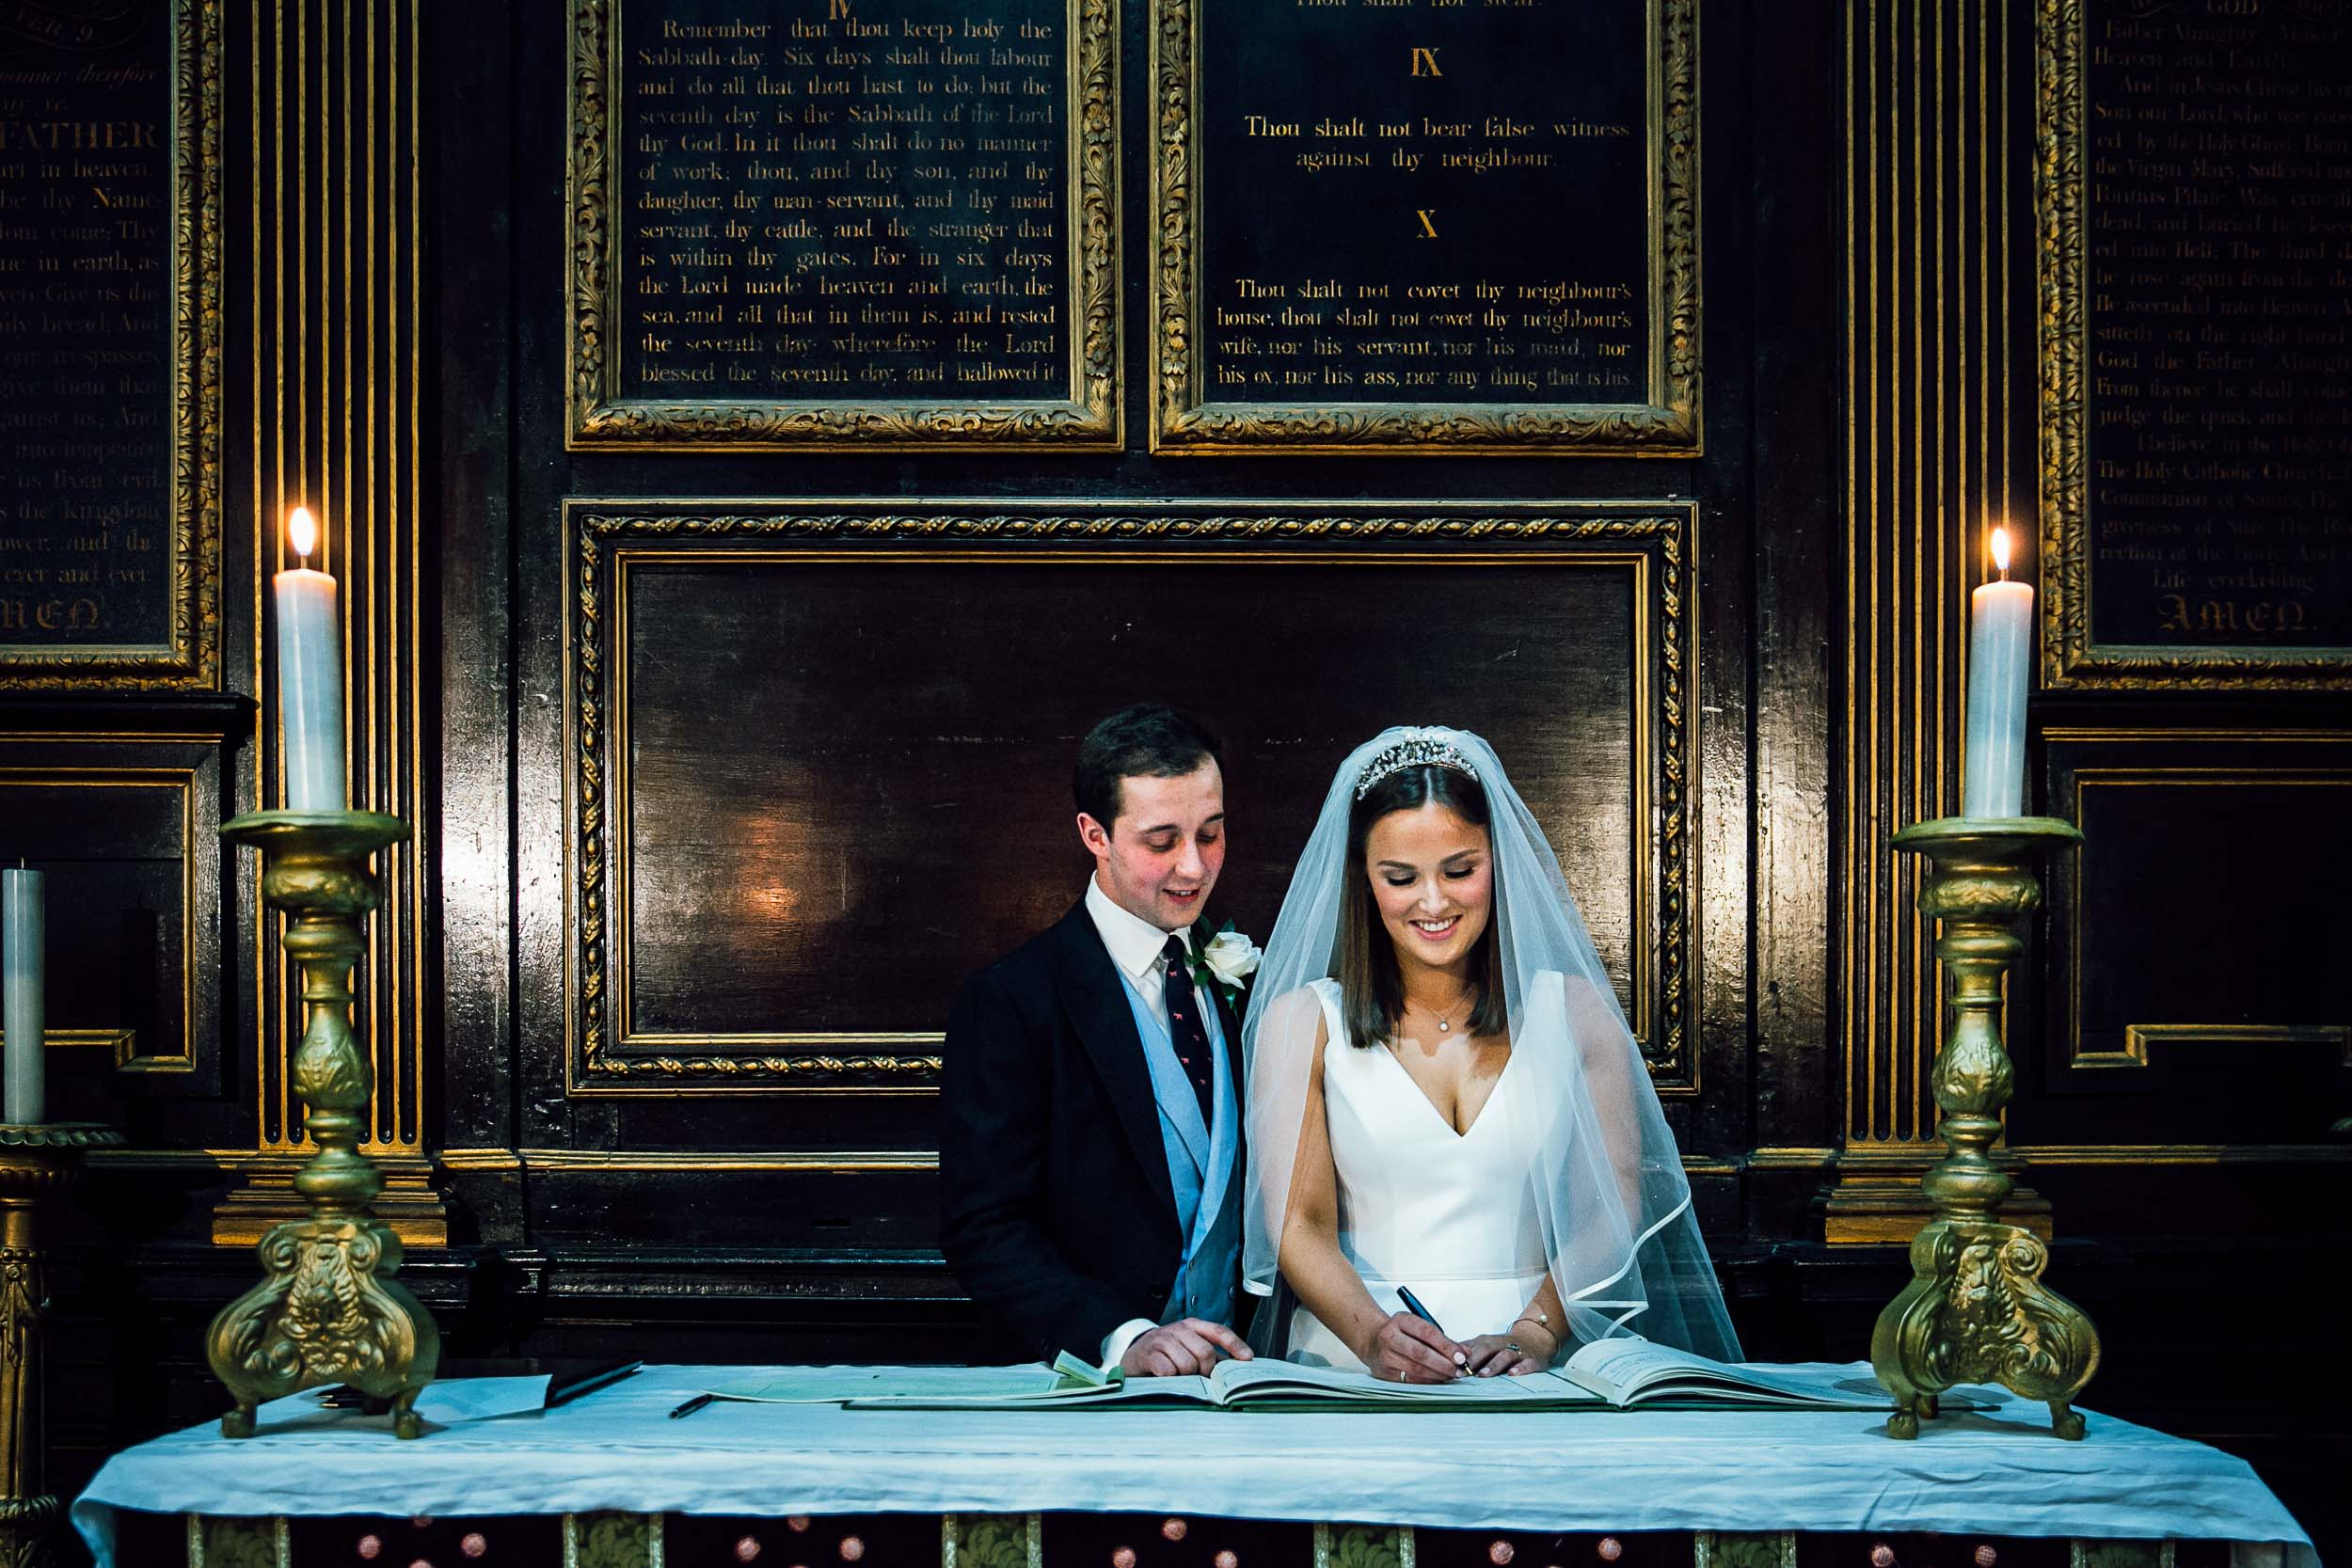 stationers-hall-wedding-photographer-london 045.jpg